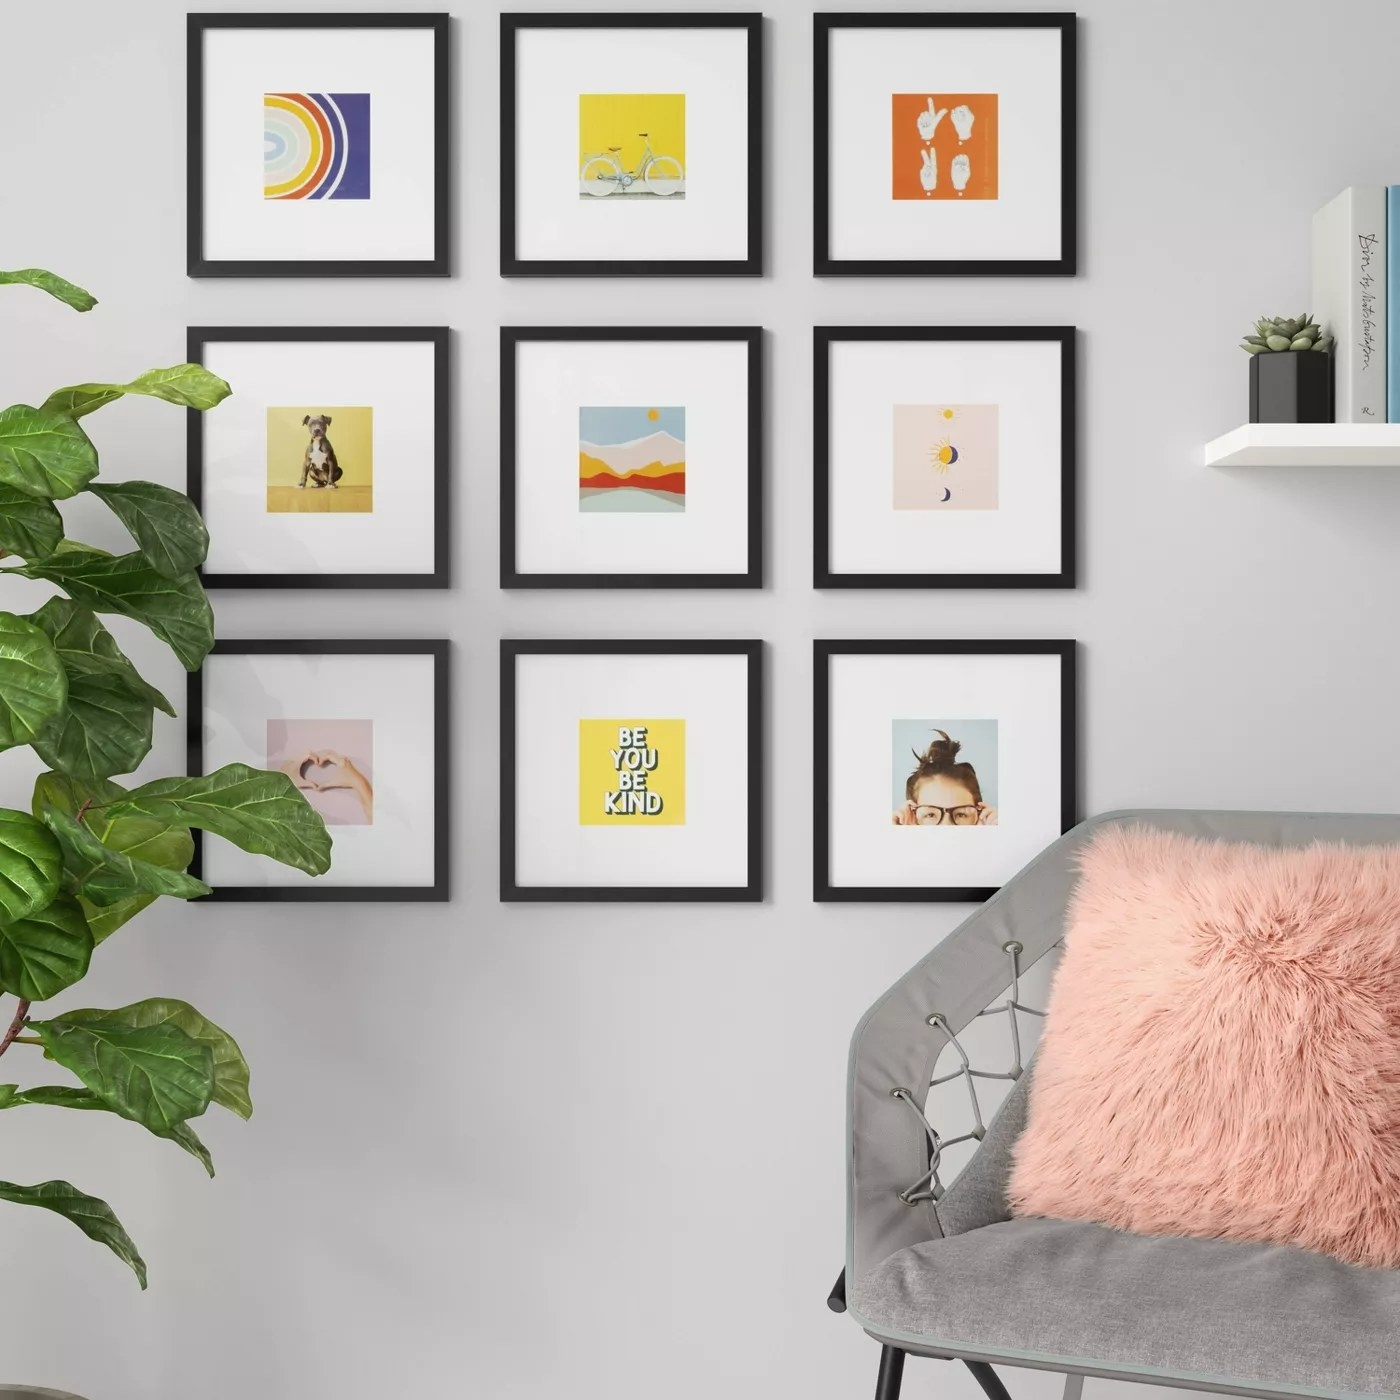 The square, black frames with white photo mats